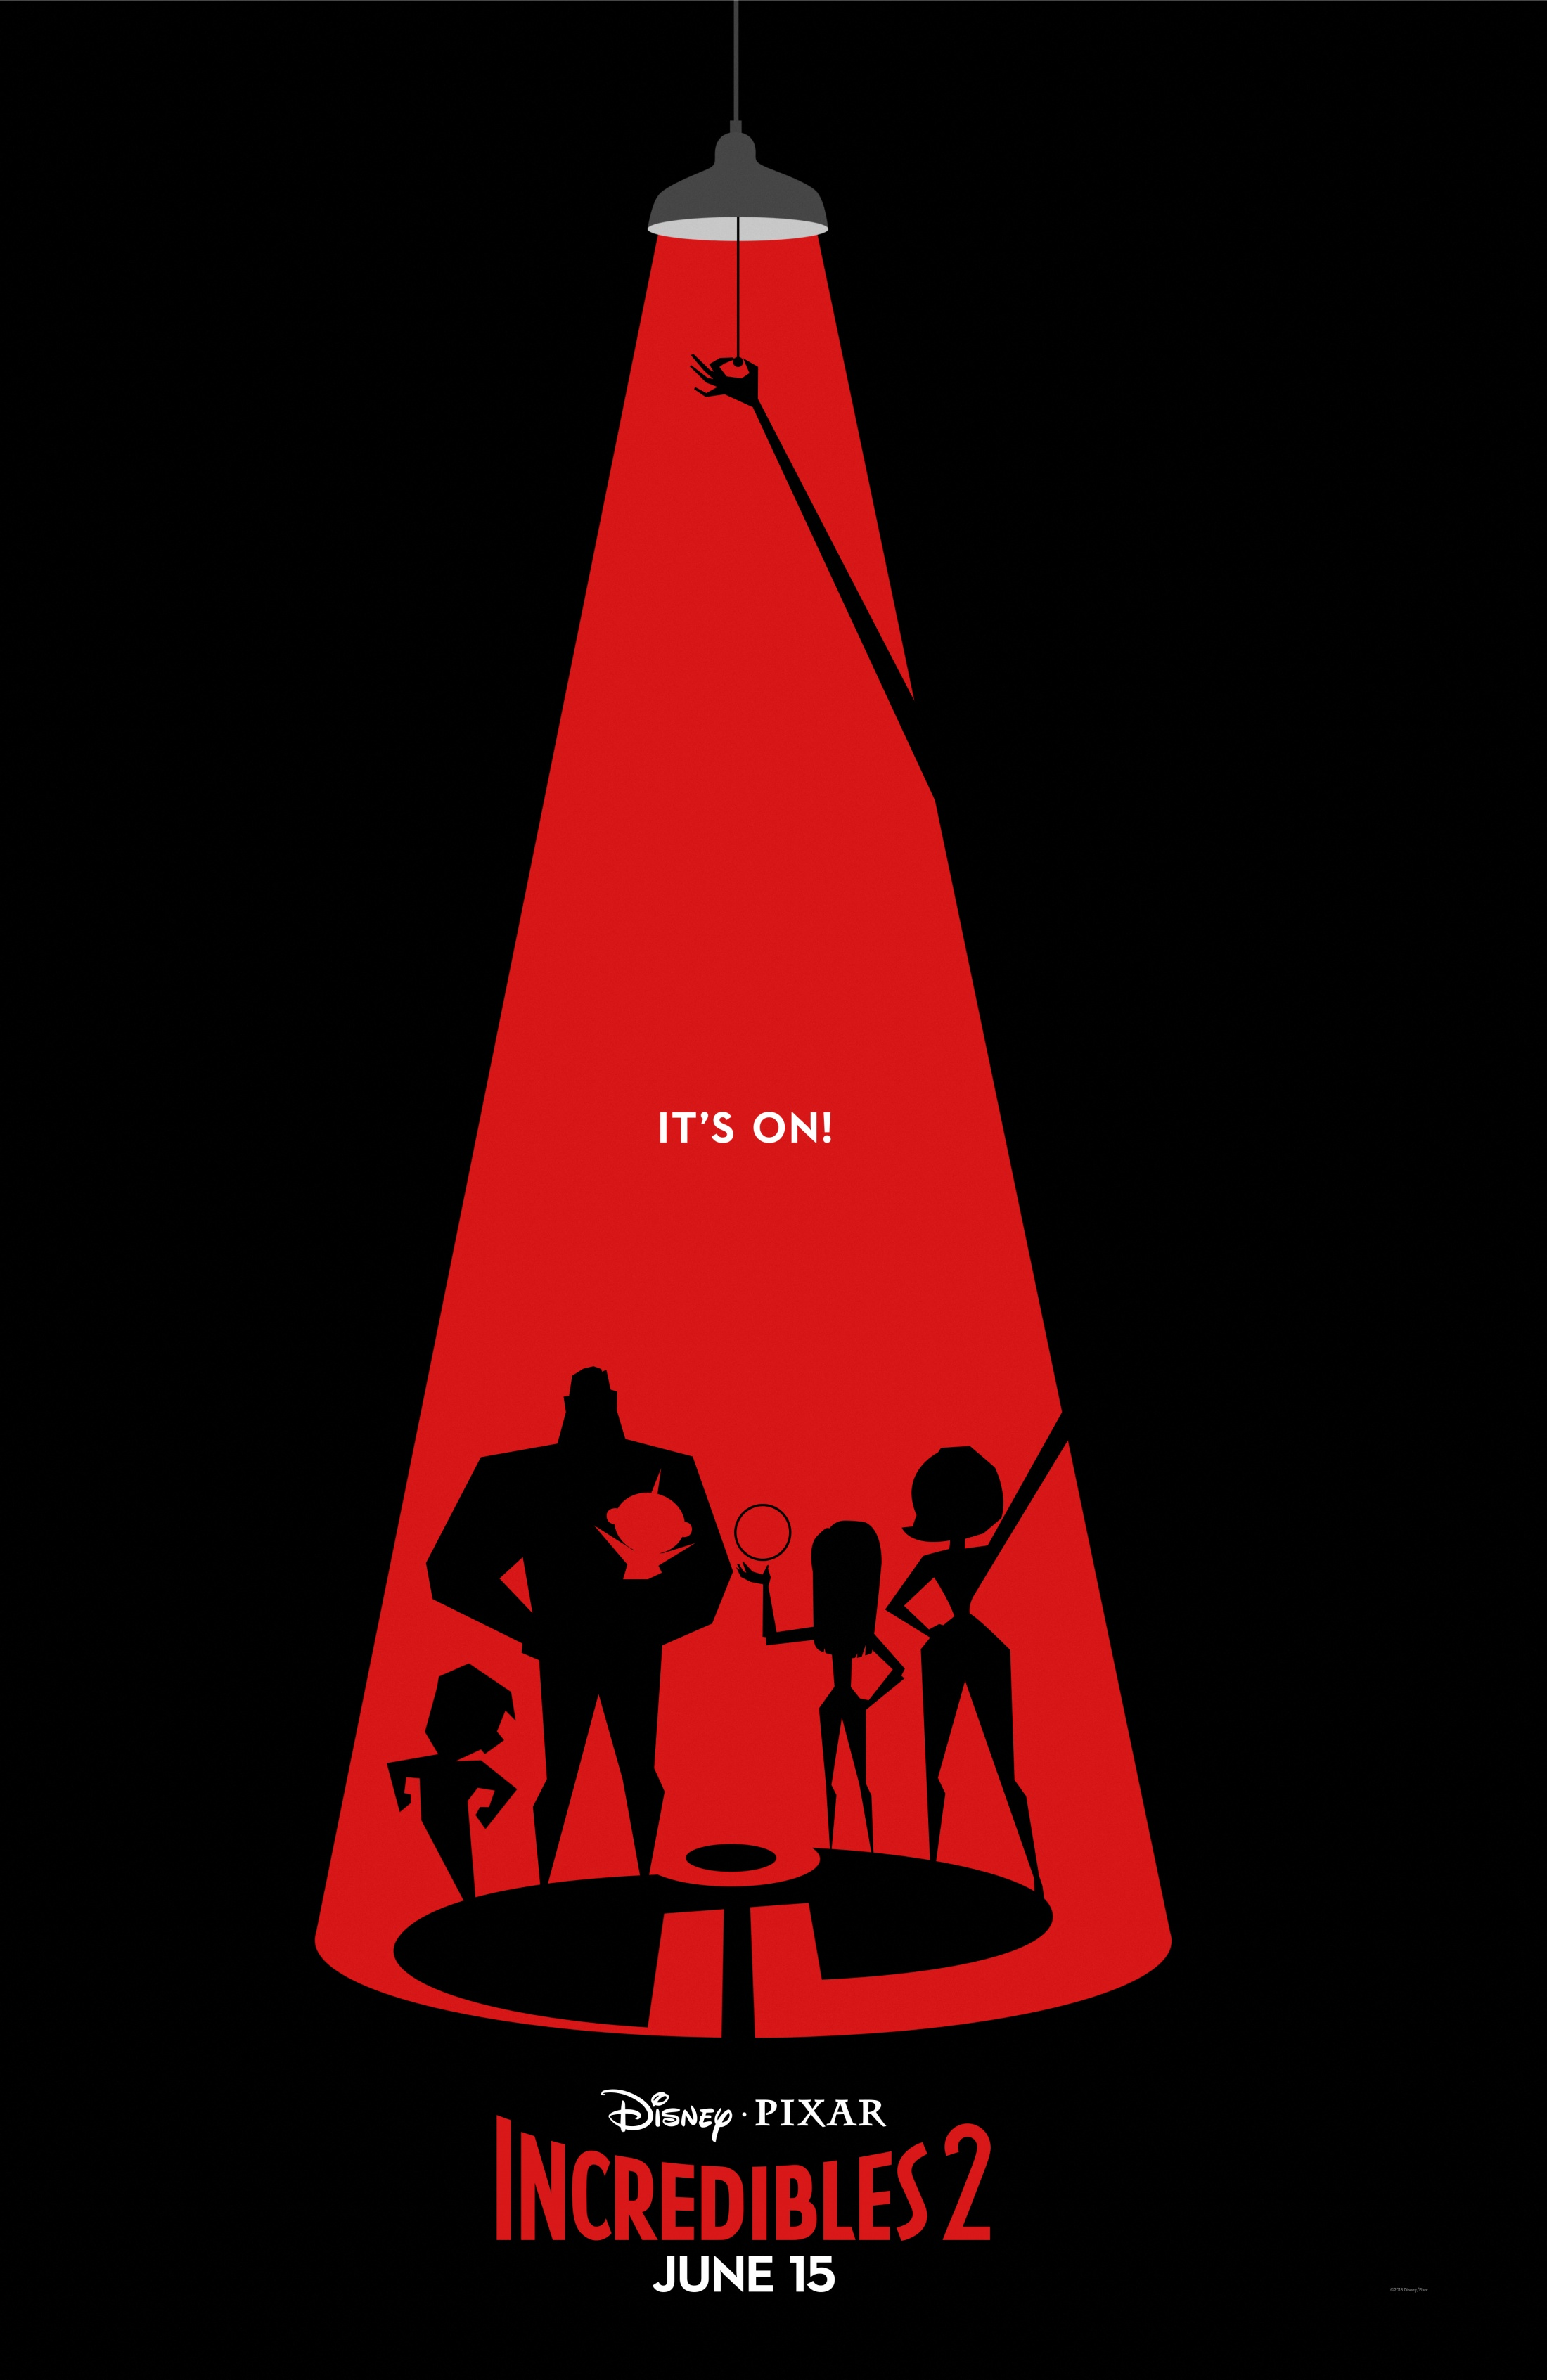 Image Media for Incredibles 2 Exclusive Graphic Poster Series Campaign